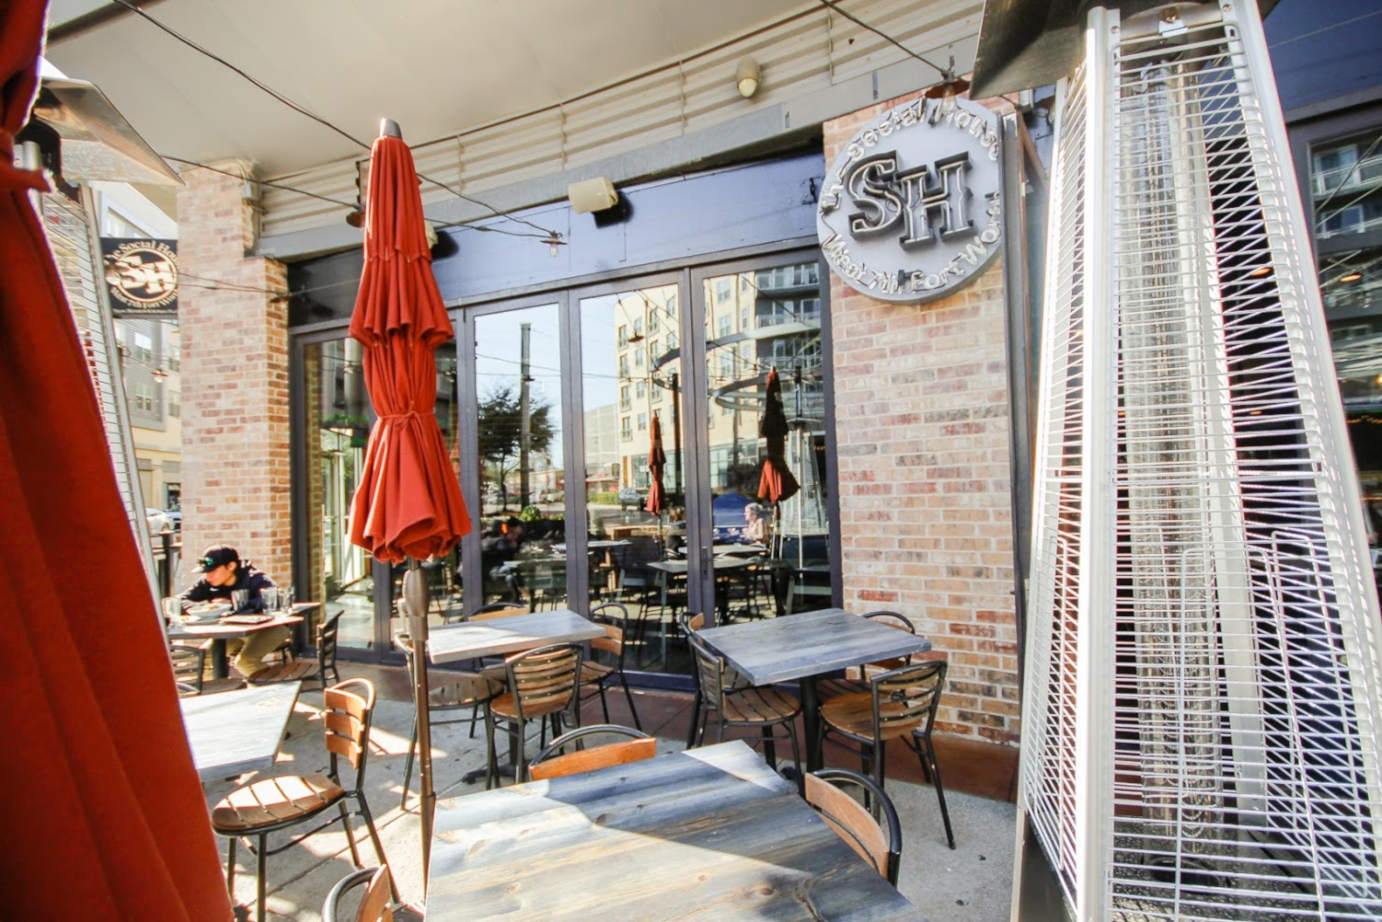 Exterior seating area with parasols - Fort Worth location